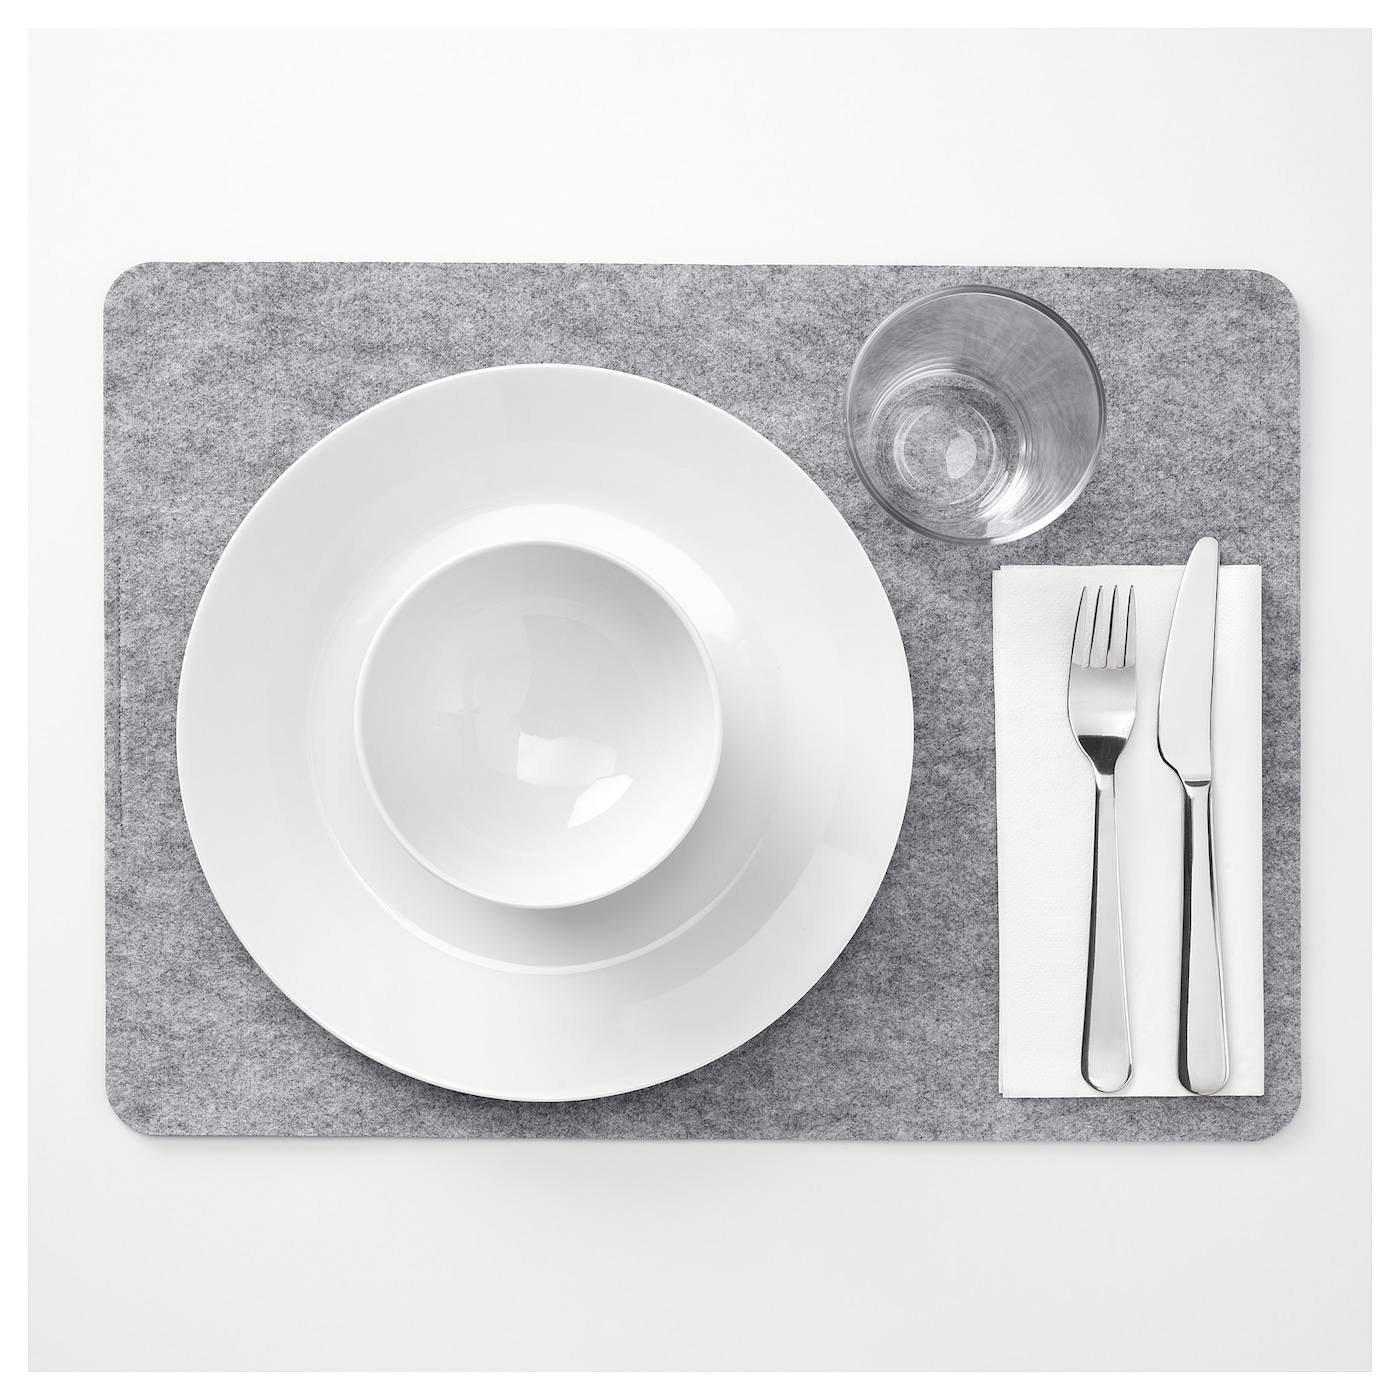 IKEA VÄLBEHÅLL place mat Protects the table top surface and reduces noise from plates and cutlery.